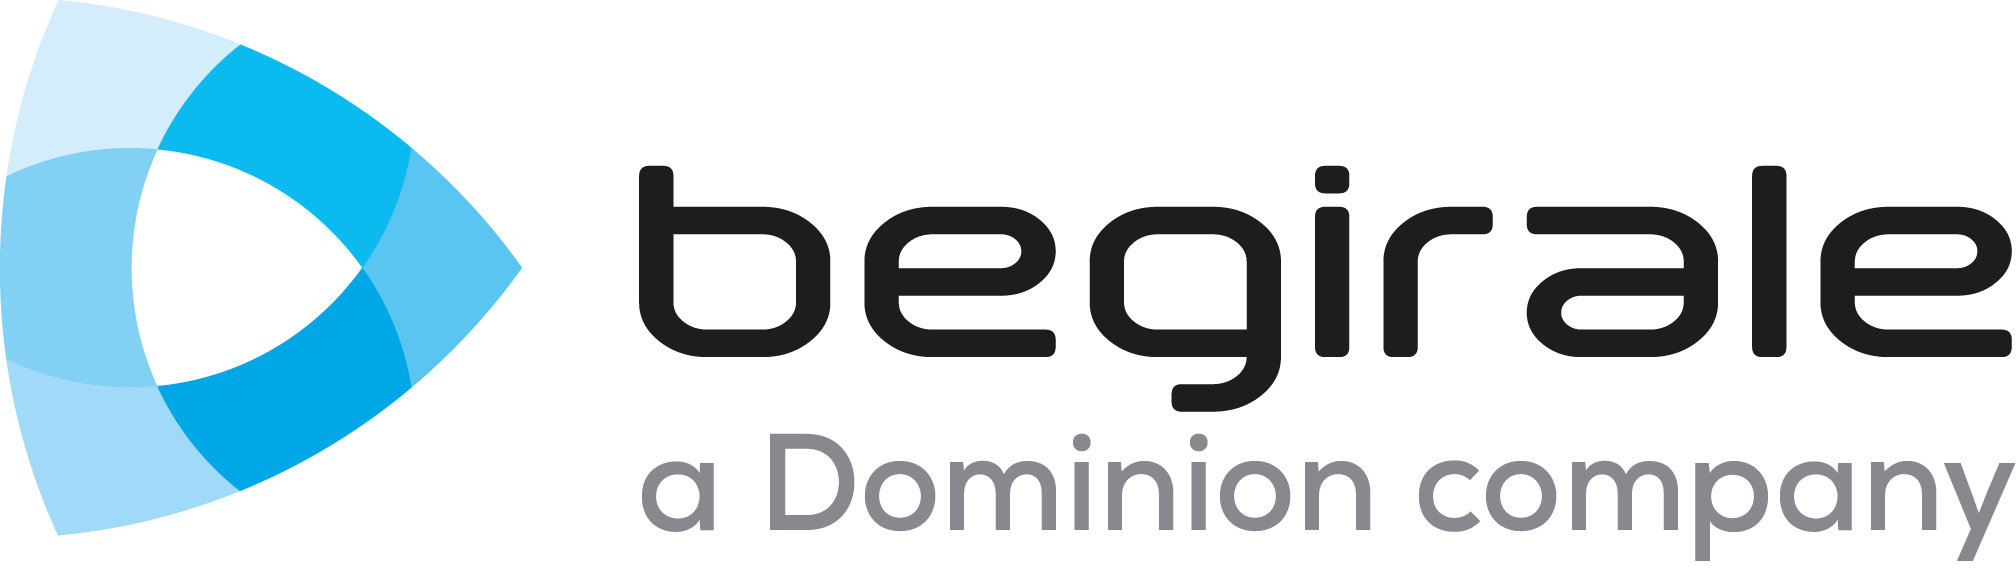 Begirale | Develops control and risk minimizing solutions for facilities, processes and individuals